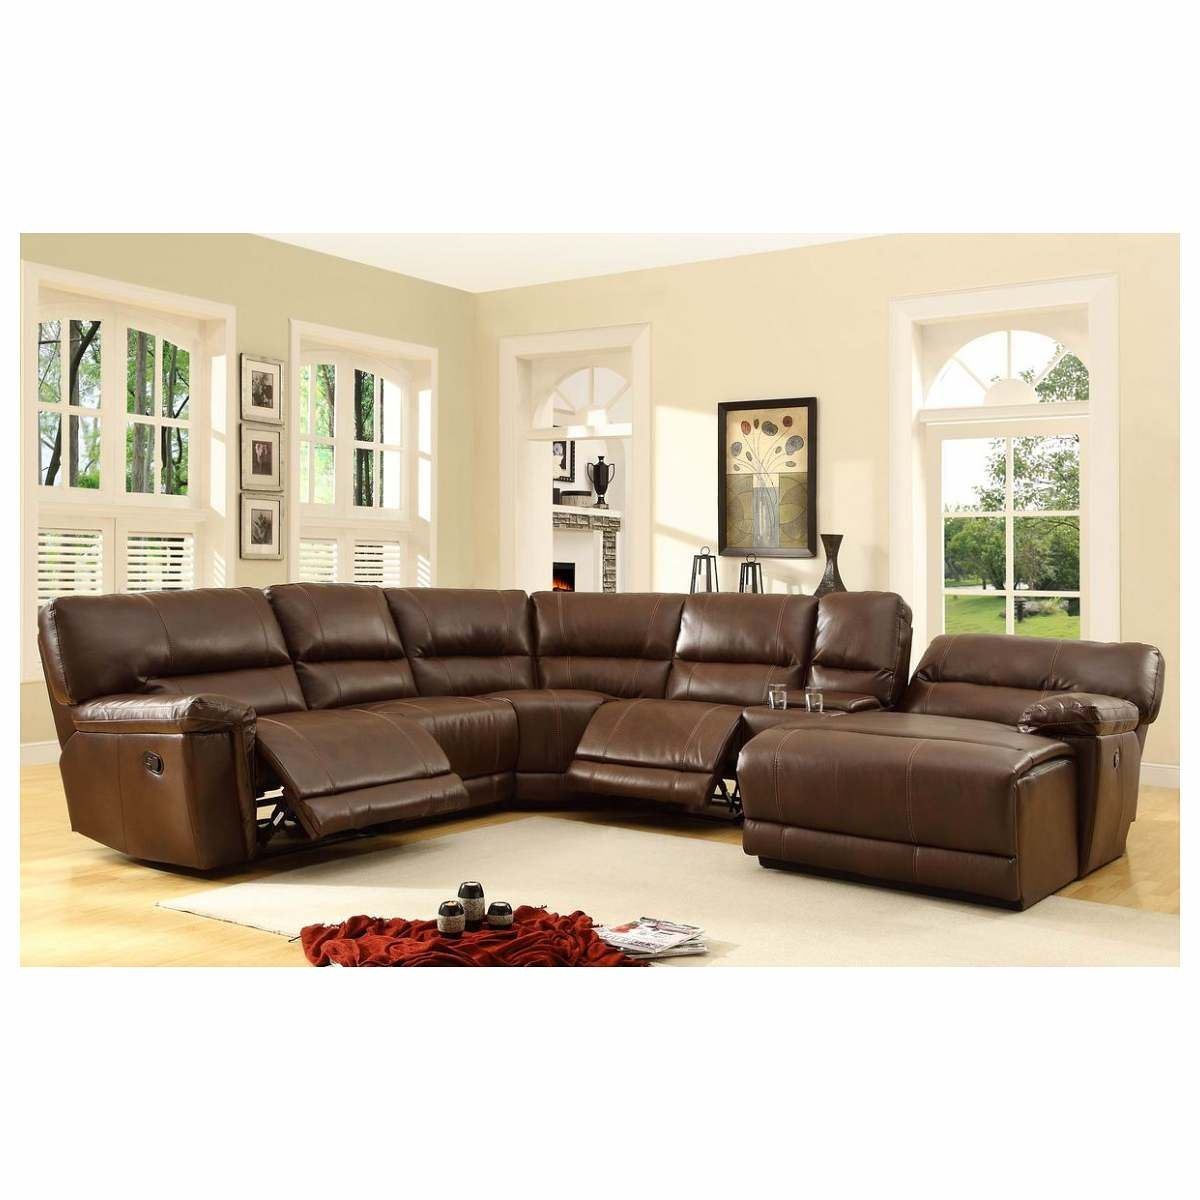 Beau 6 Pc Blythe Collection Brown Bonded Leather Match Upholstered Reclining  Sectional Sofa Set With Chaise